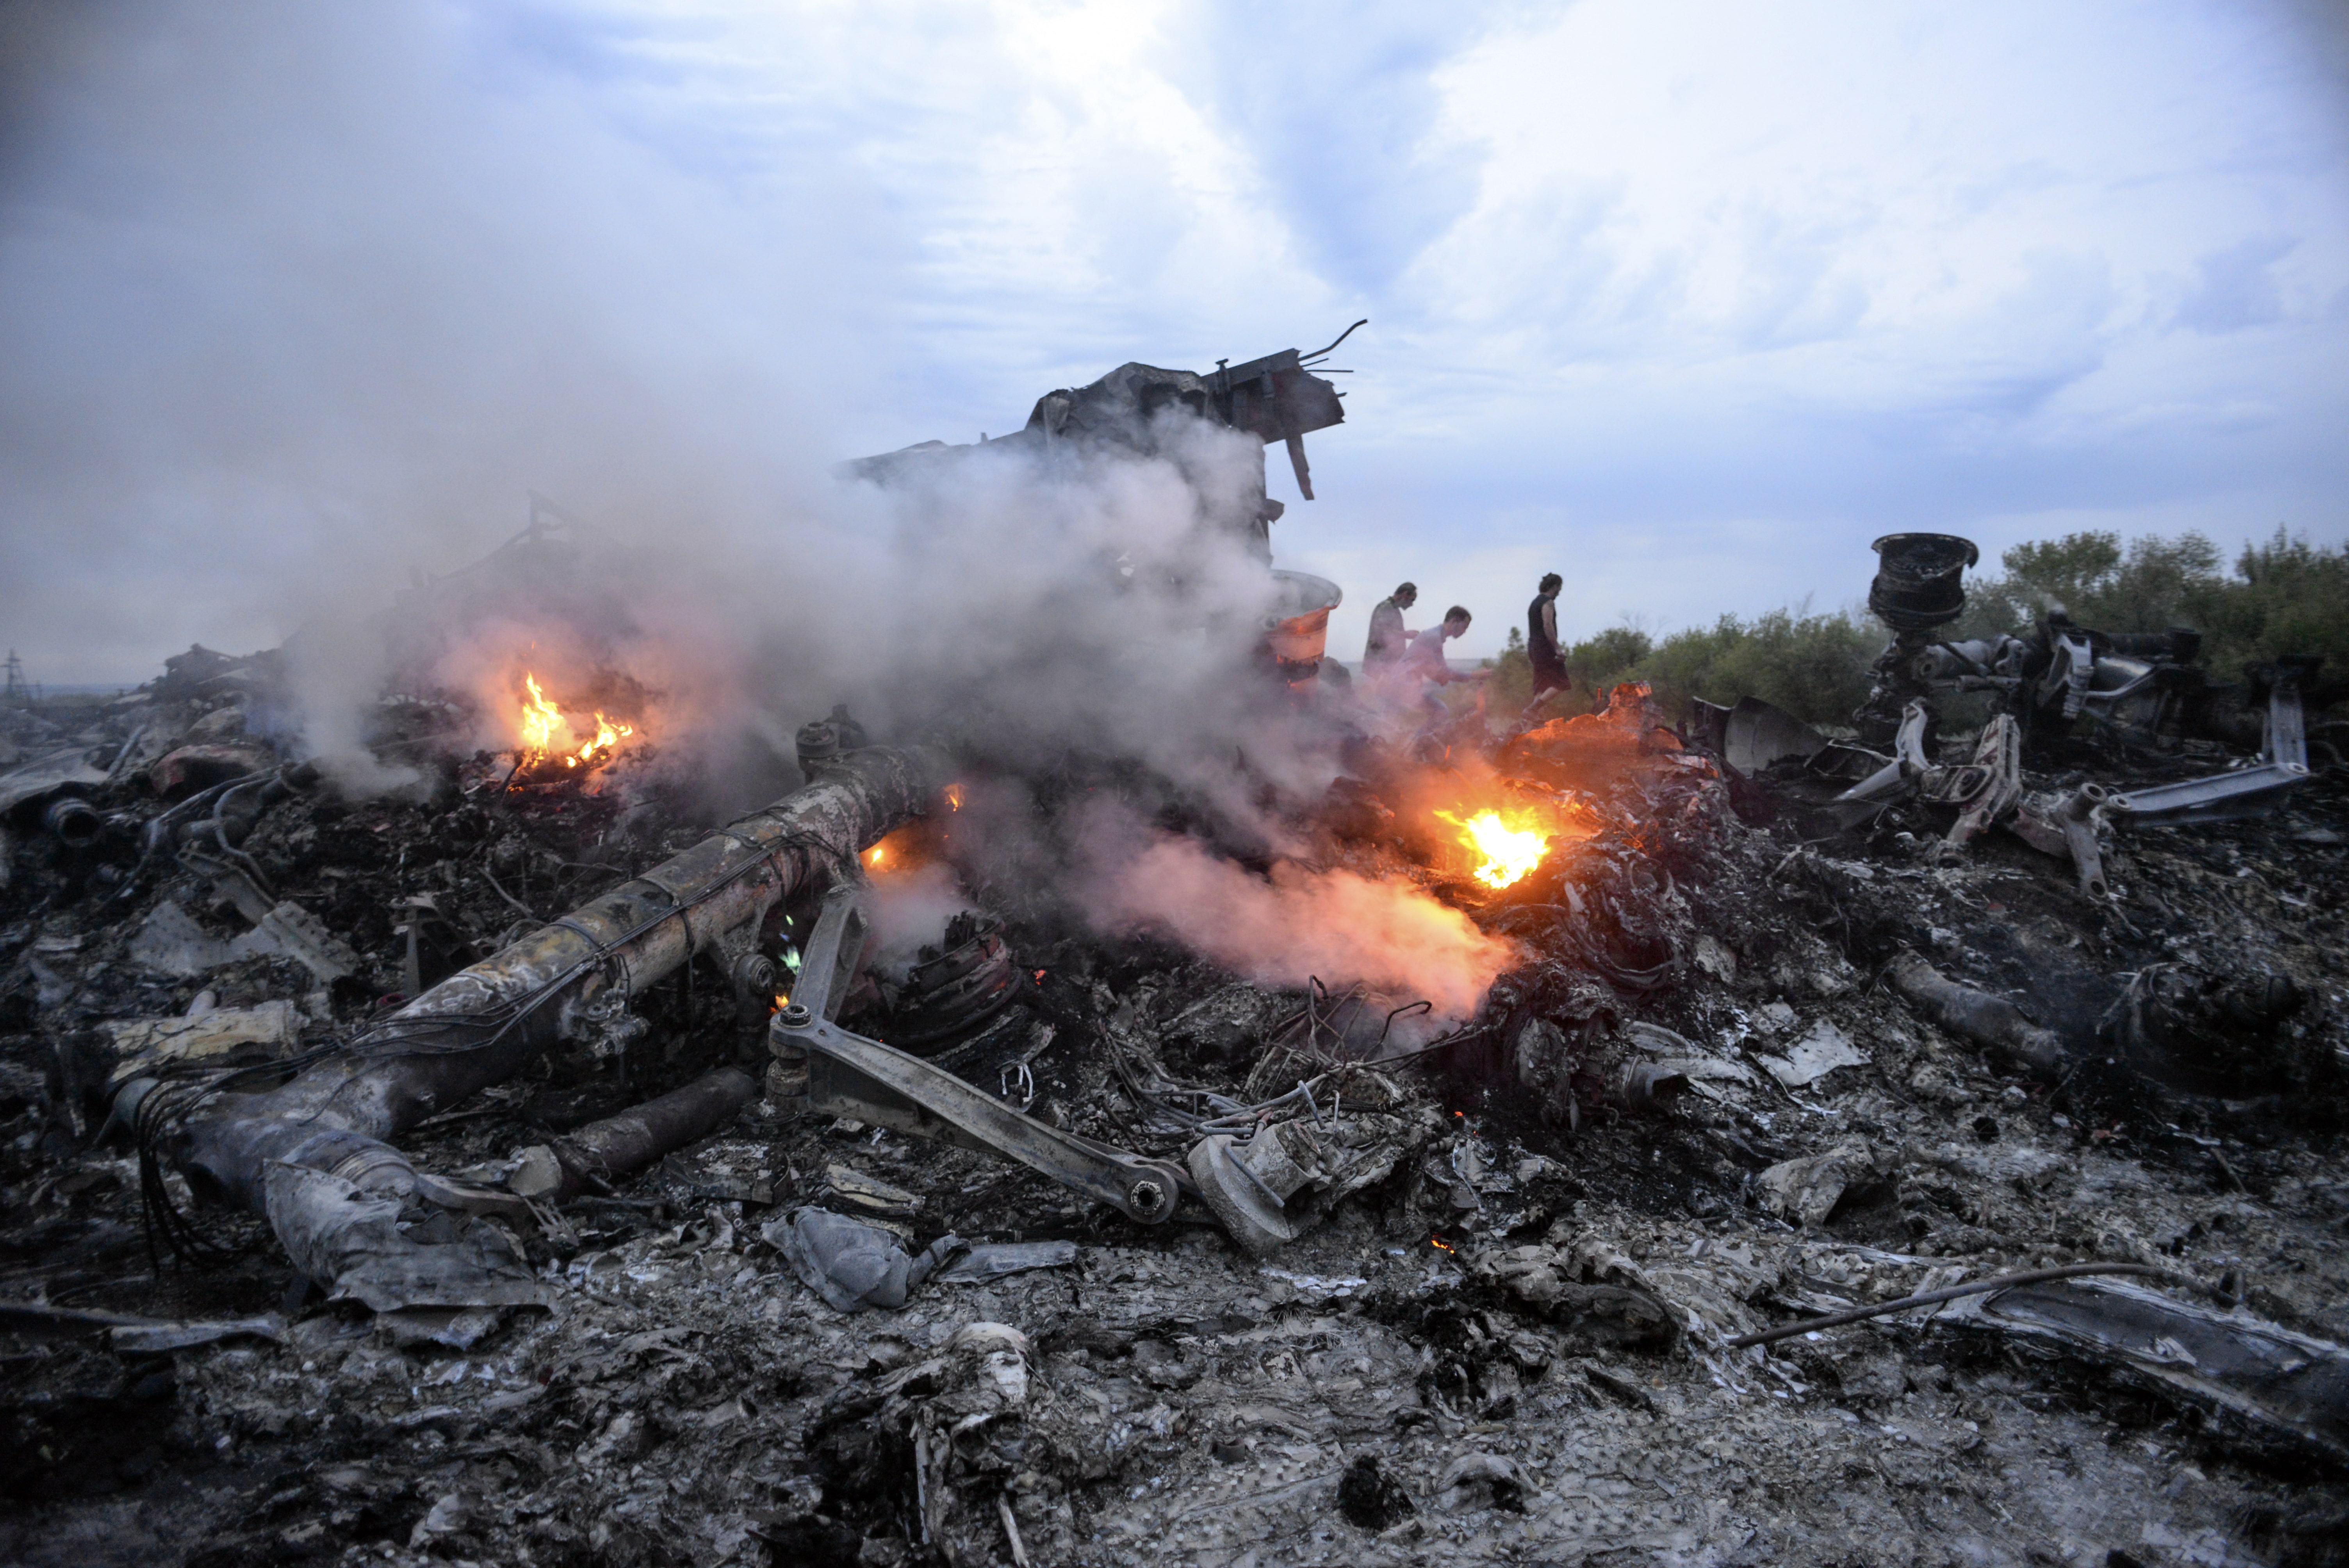 Relatives stage silent protest ahead of MH17 trial